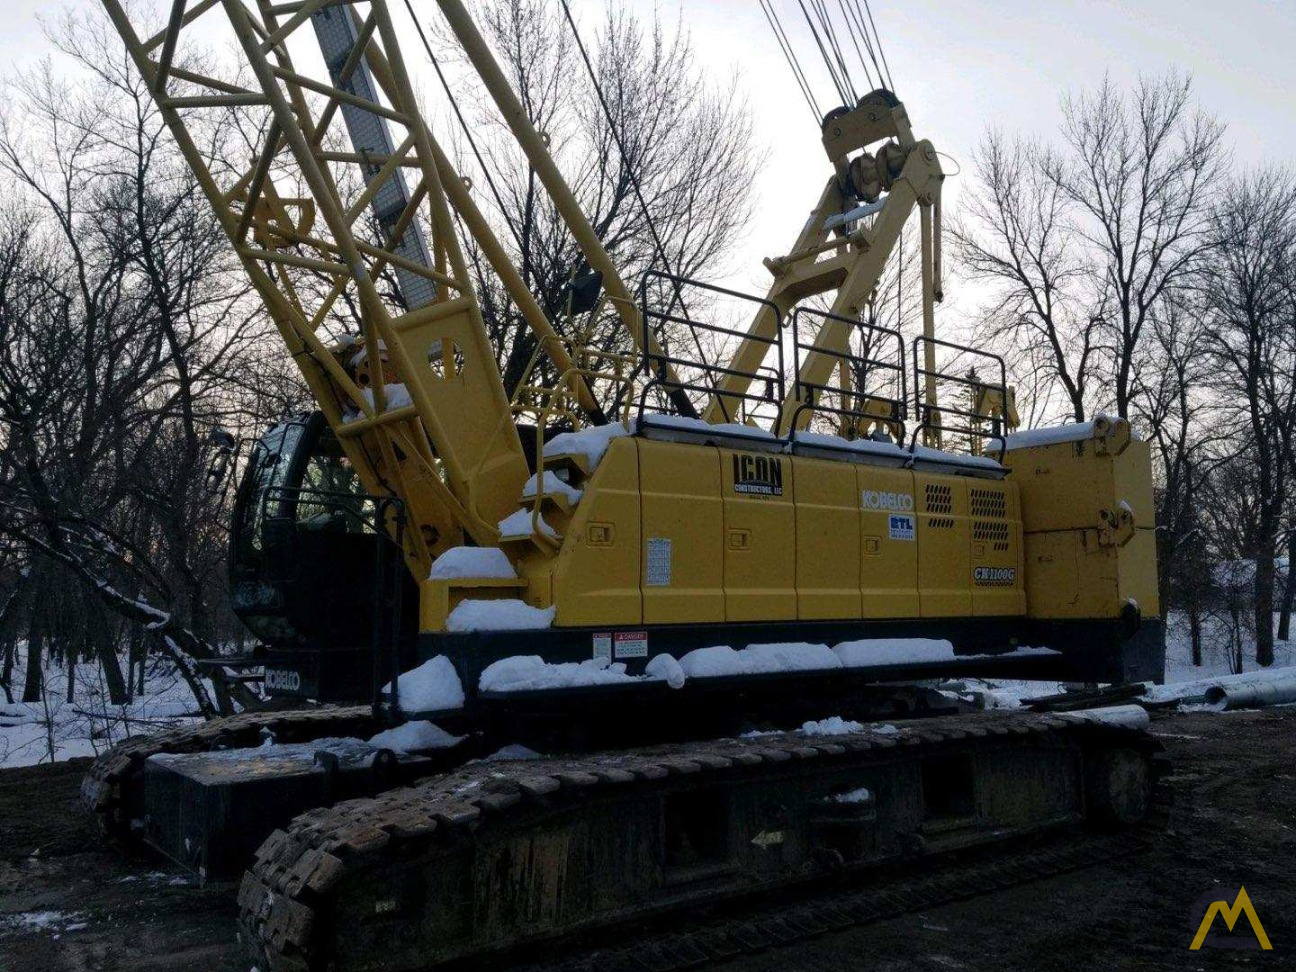 Kobelco CK1100G-2 110-Ton Lattice Boom Crawler Crane  0